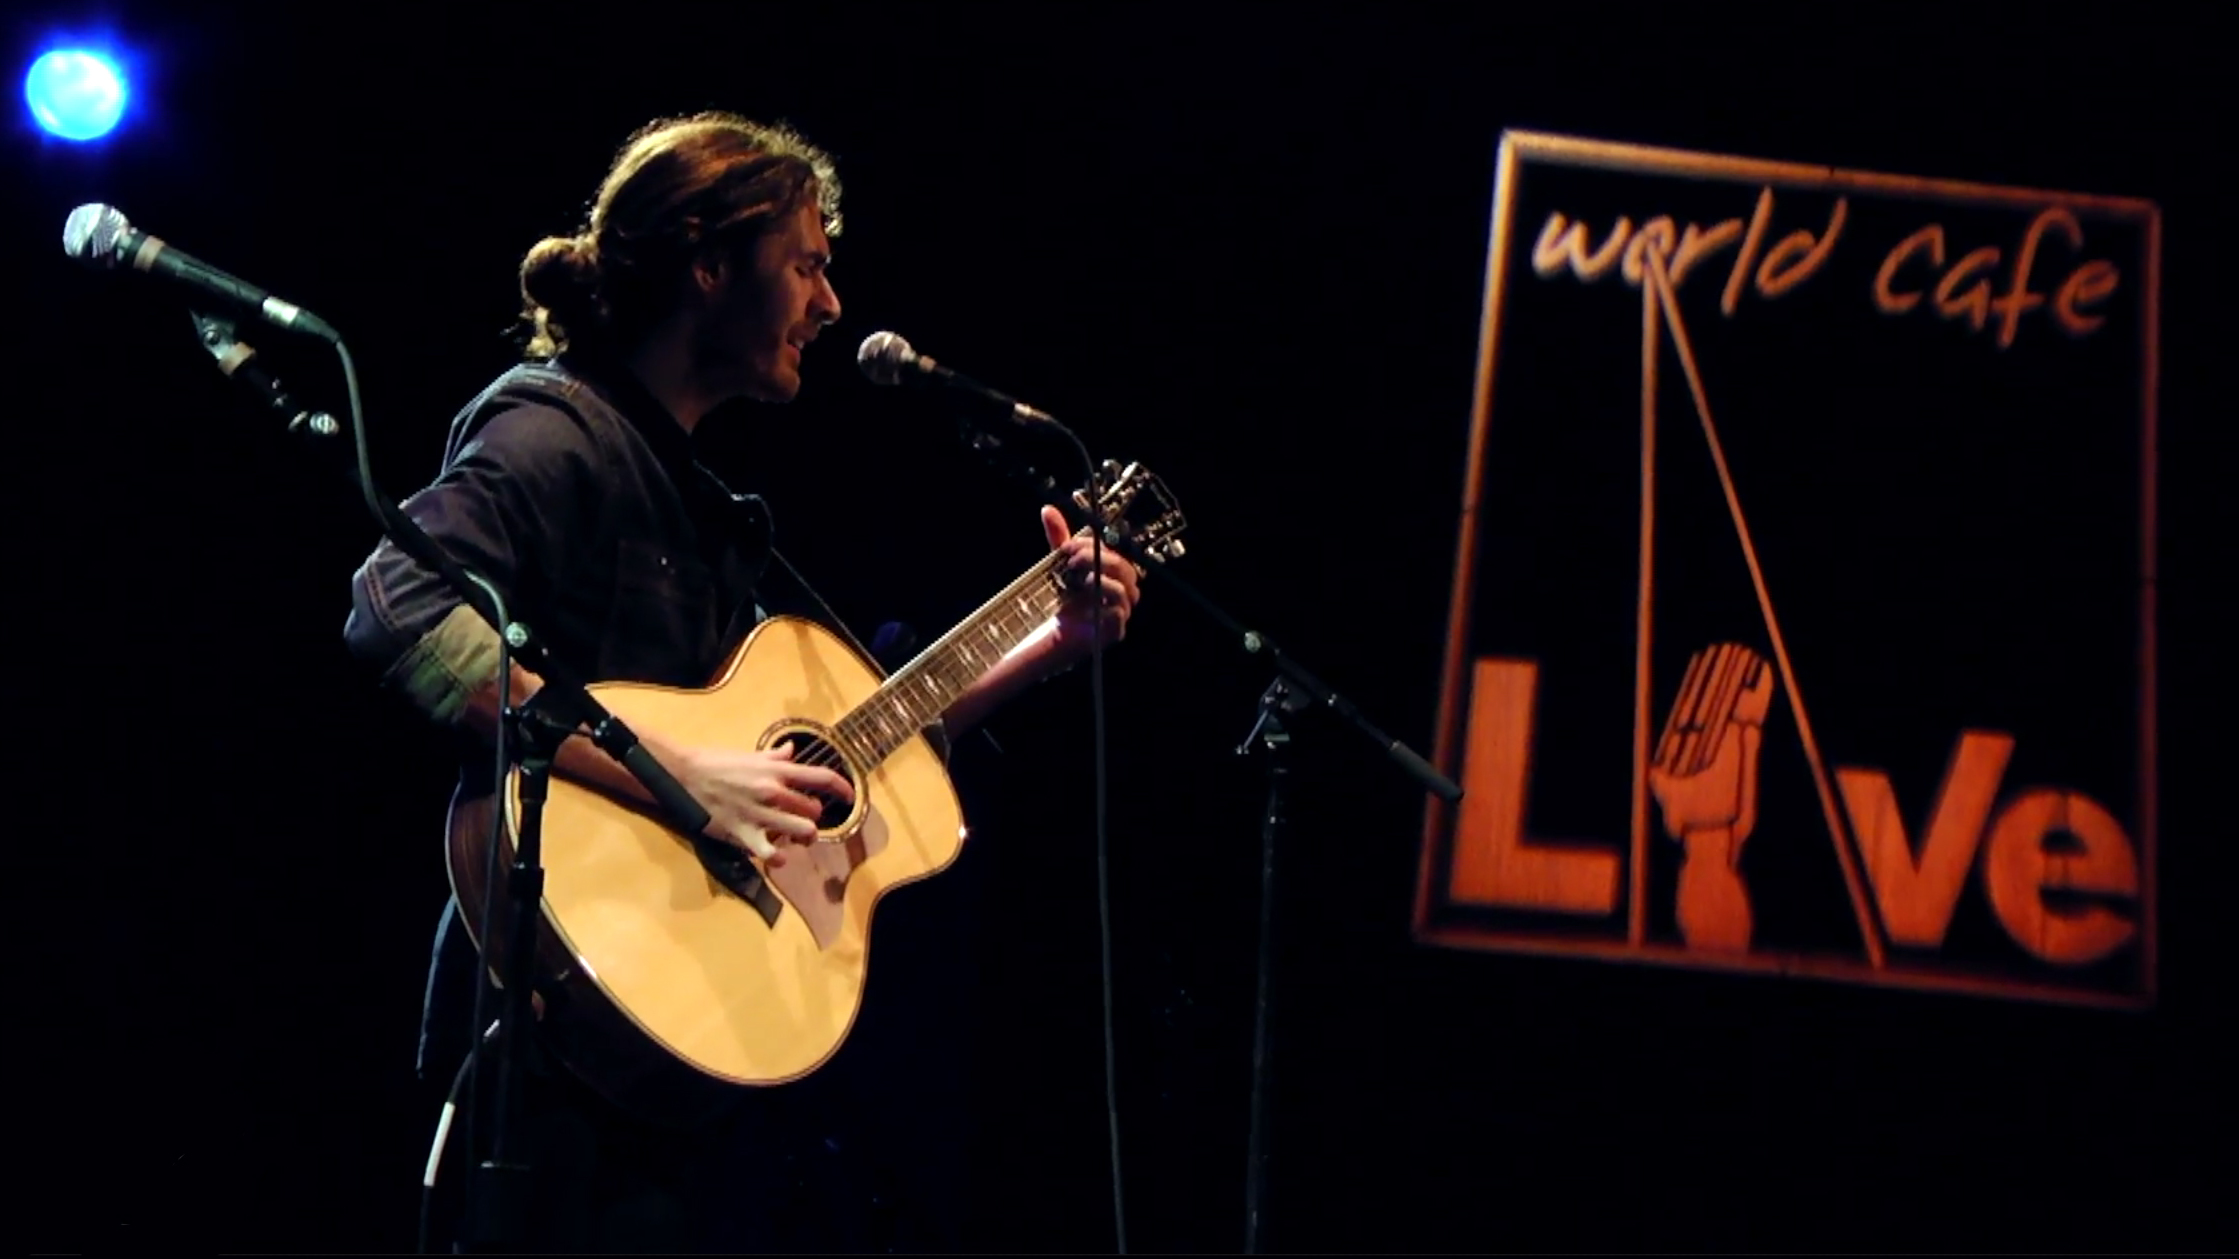 Hozier performing live during this World Cafe Session